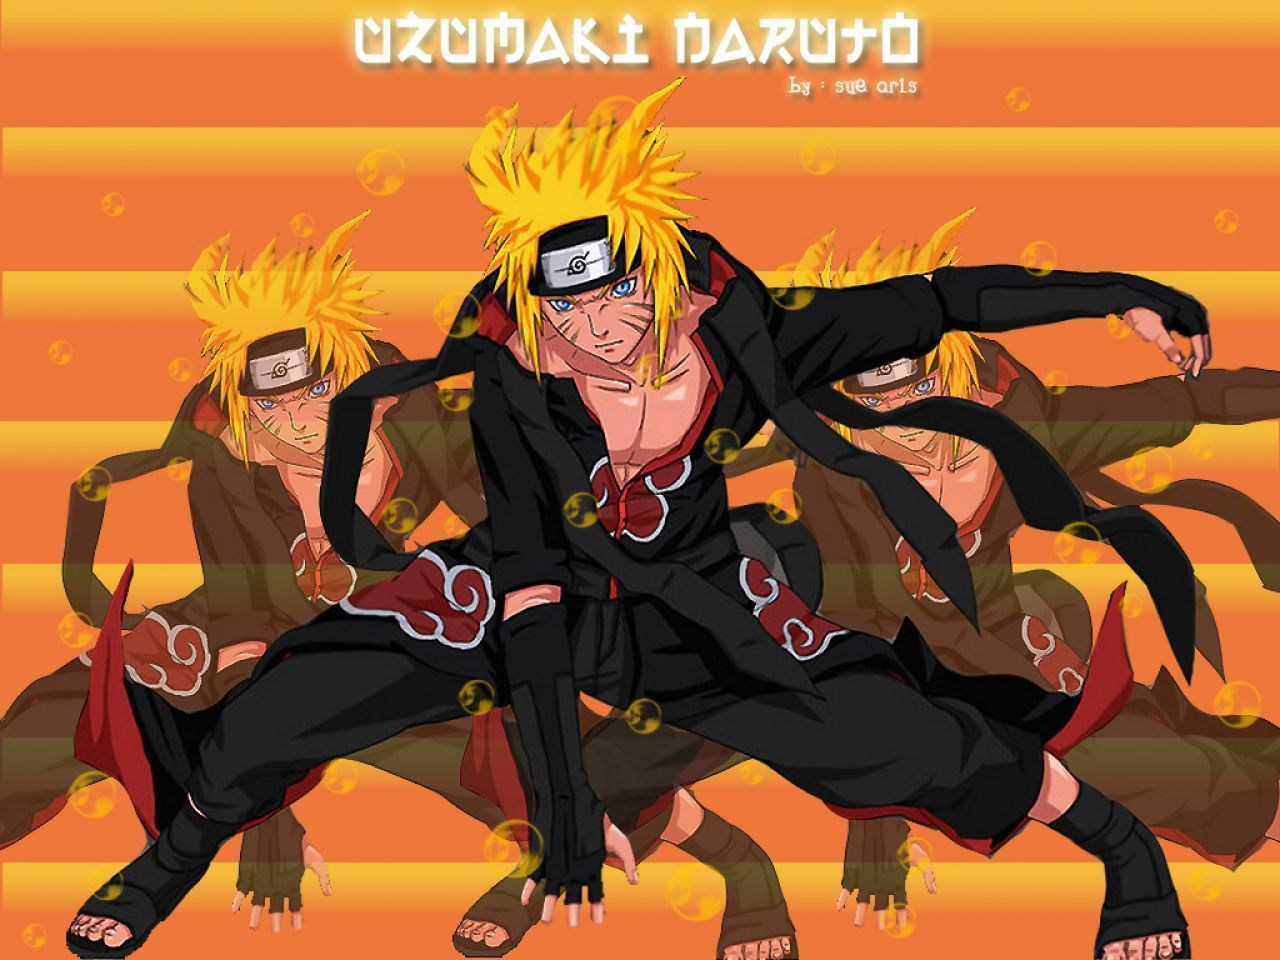 naruto shippuden 293 power episode 4 plot naruto shippuden 293 power